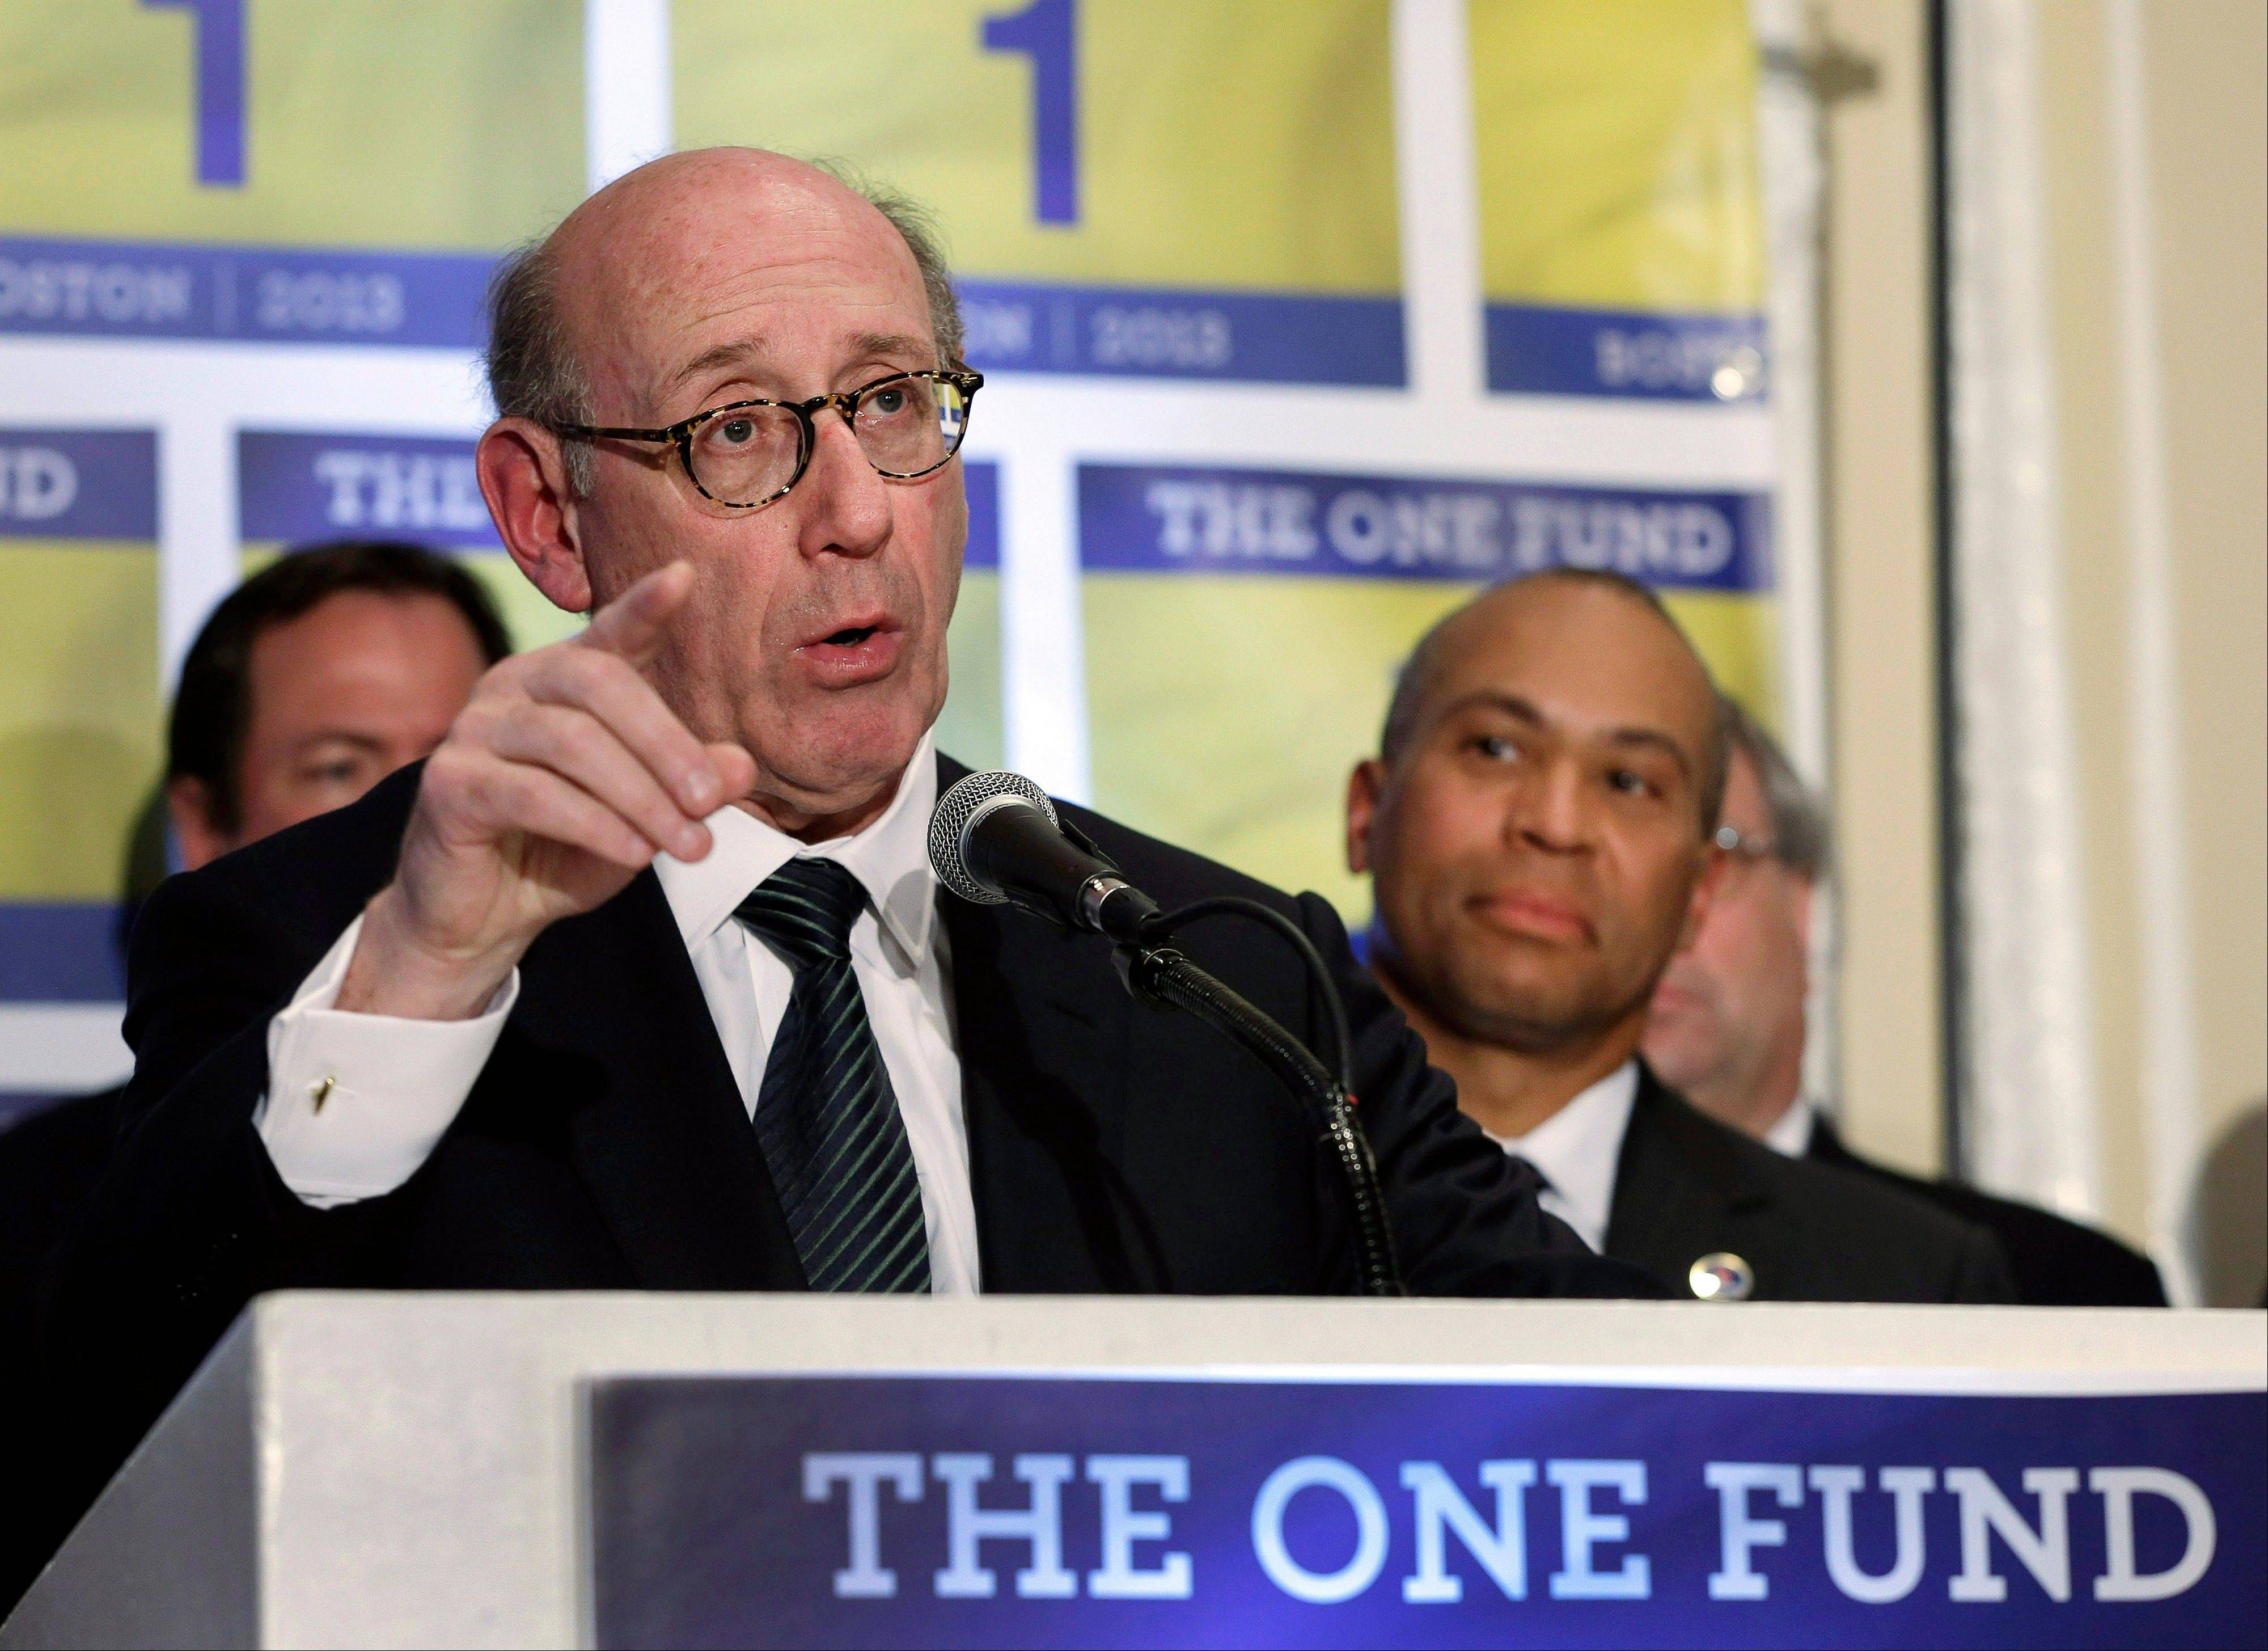 Kenneth Feinberg, an attorney who managed the 9/11 Victim Compensation Fund, spoke two weeks ago at a news conference in Boston as Massachusetts Gov. Deval Patrick, right, listened. The One Fund was established by Patrick and Boston Mayor Thomas Menino as a central place to gather donations for the Boston Marathon bombing victims.